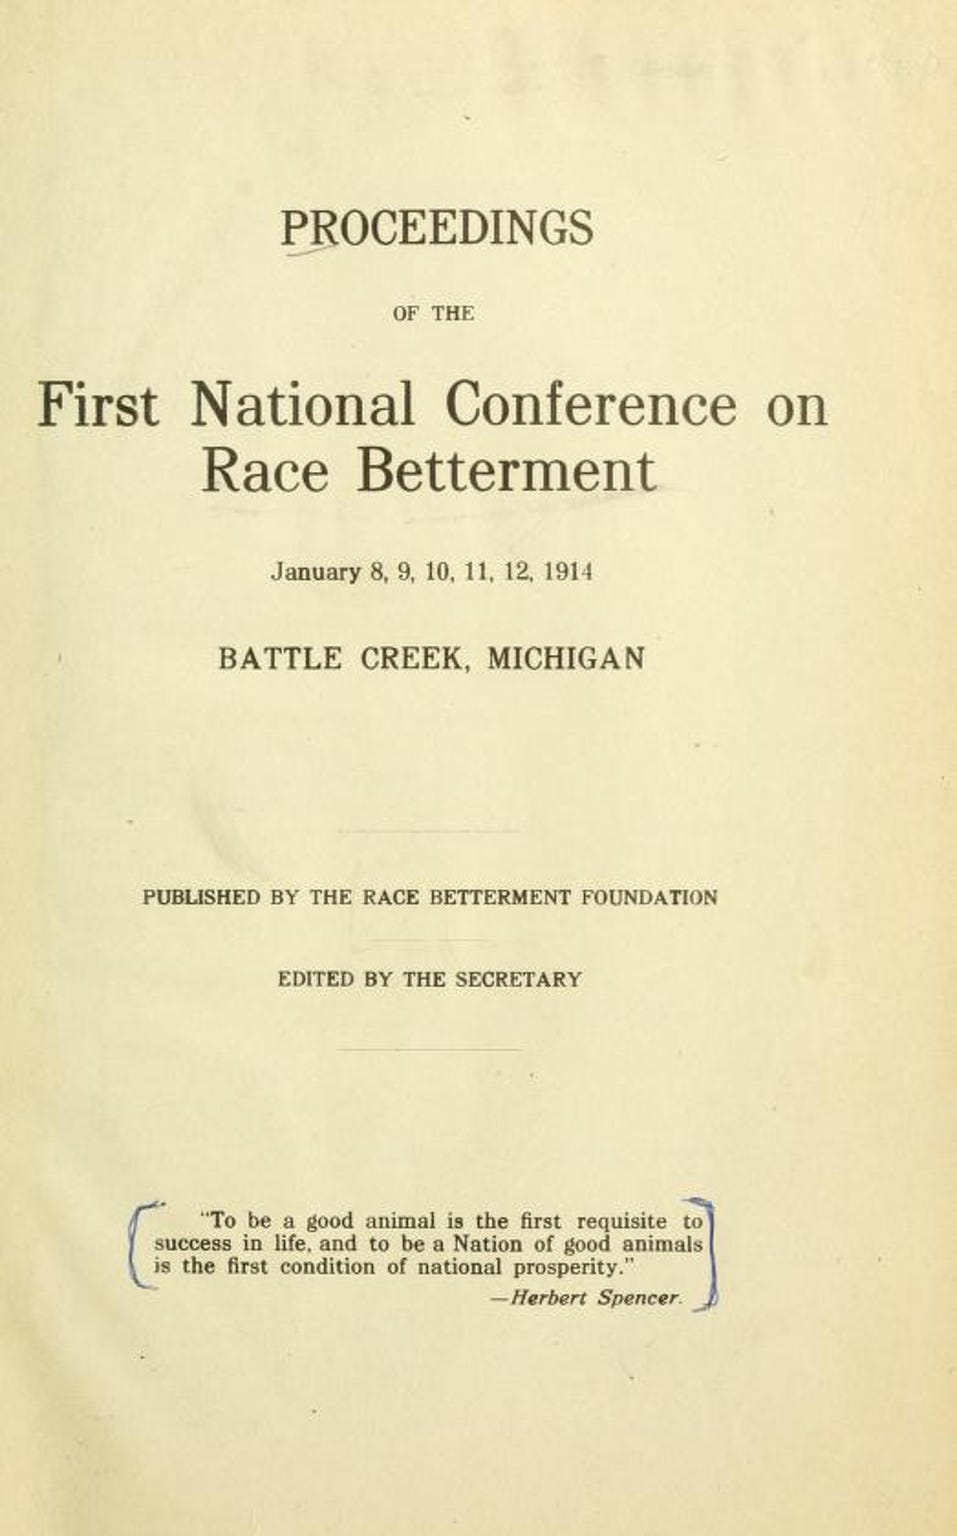 Title page from the Proceedings of the First National Conference on Race Betterment.